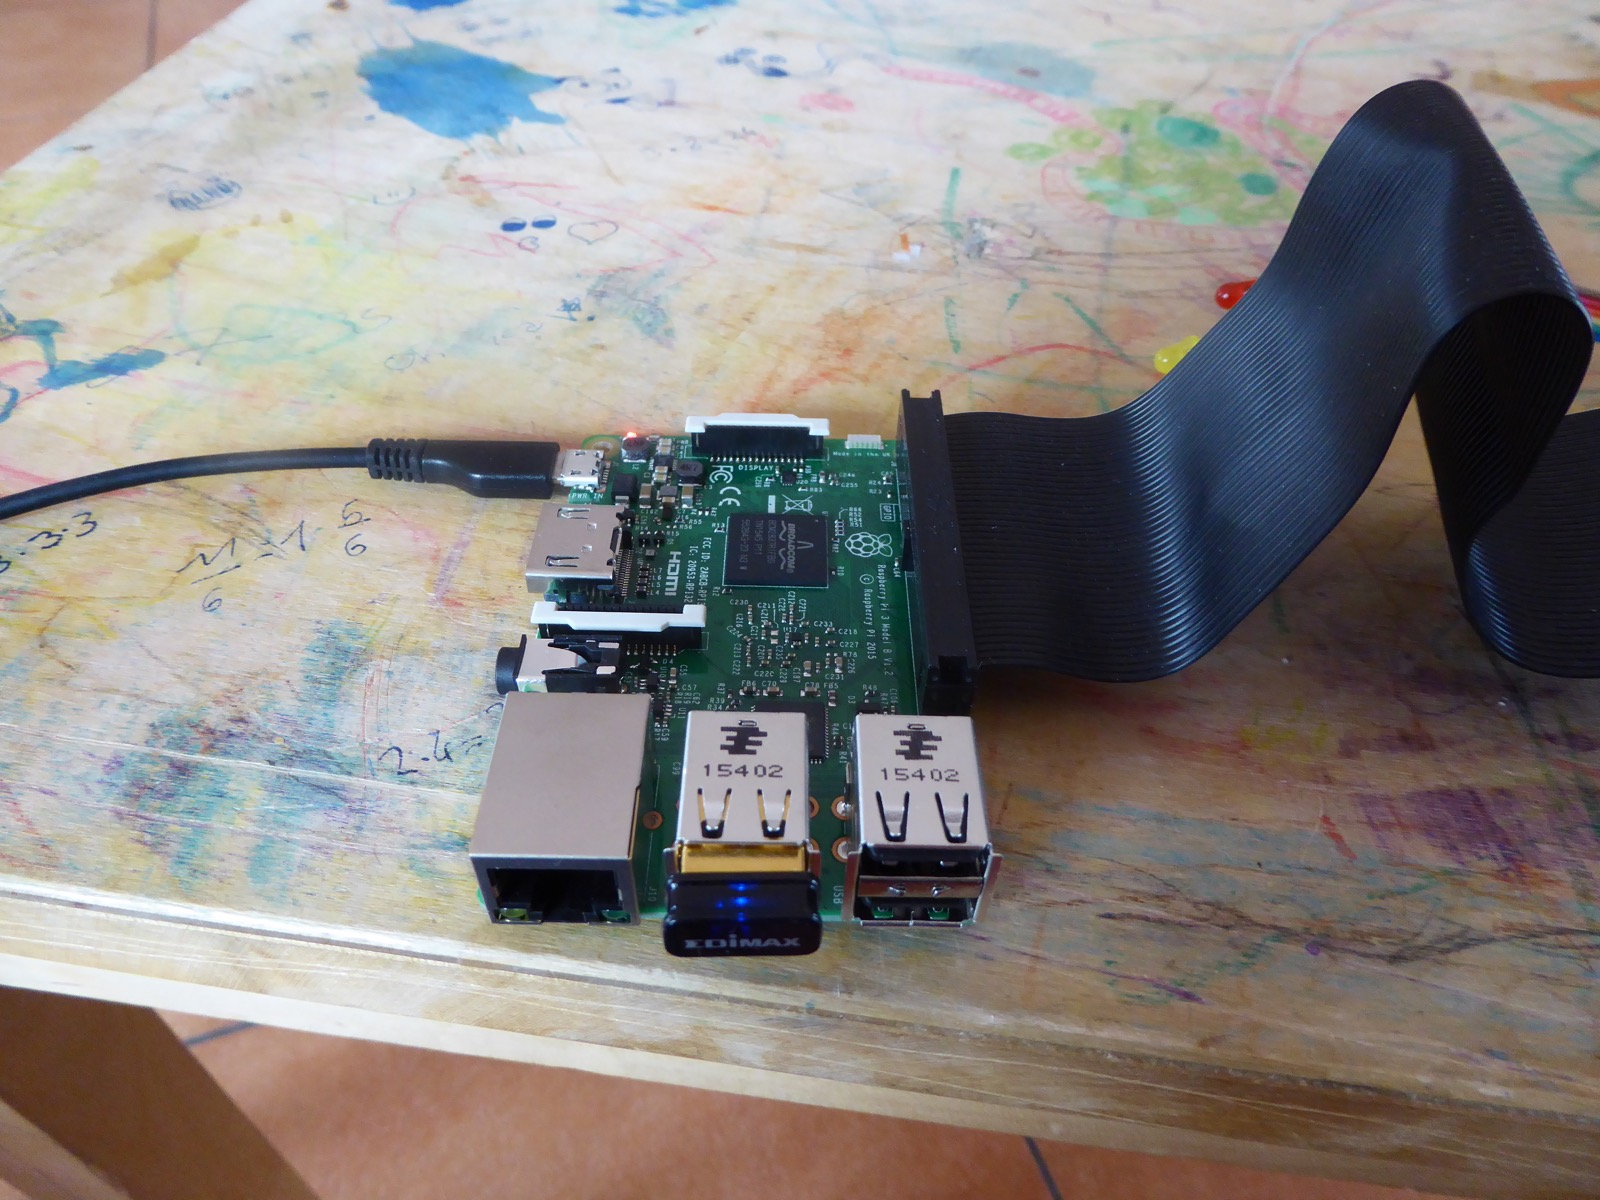 How To Build A Traffic Light Docker Pirates Armed With Explosive Stuff Simple Circuit Hypriot Raspberry Pi 3 Running App Edimax As Workaround Soon Onboard Wifi Support